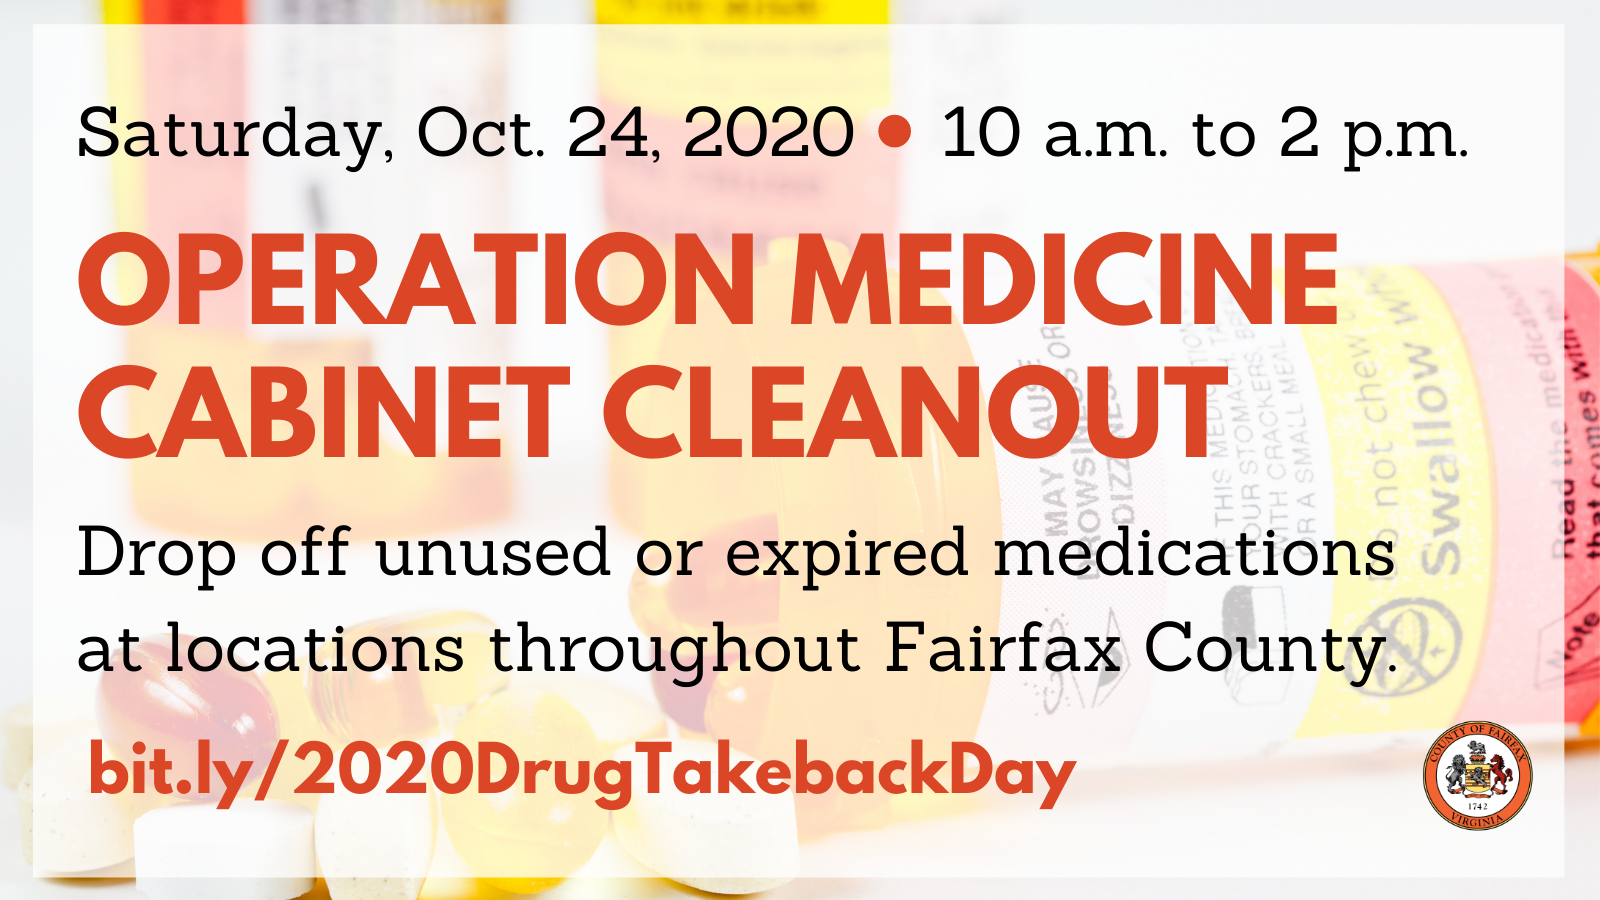 Operation Medicine Cabinet Cleanout graphic for Twitter